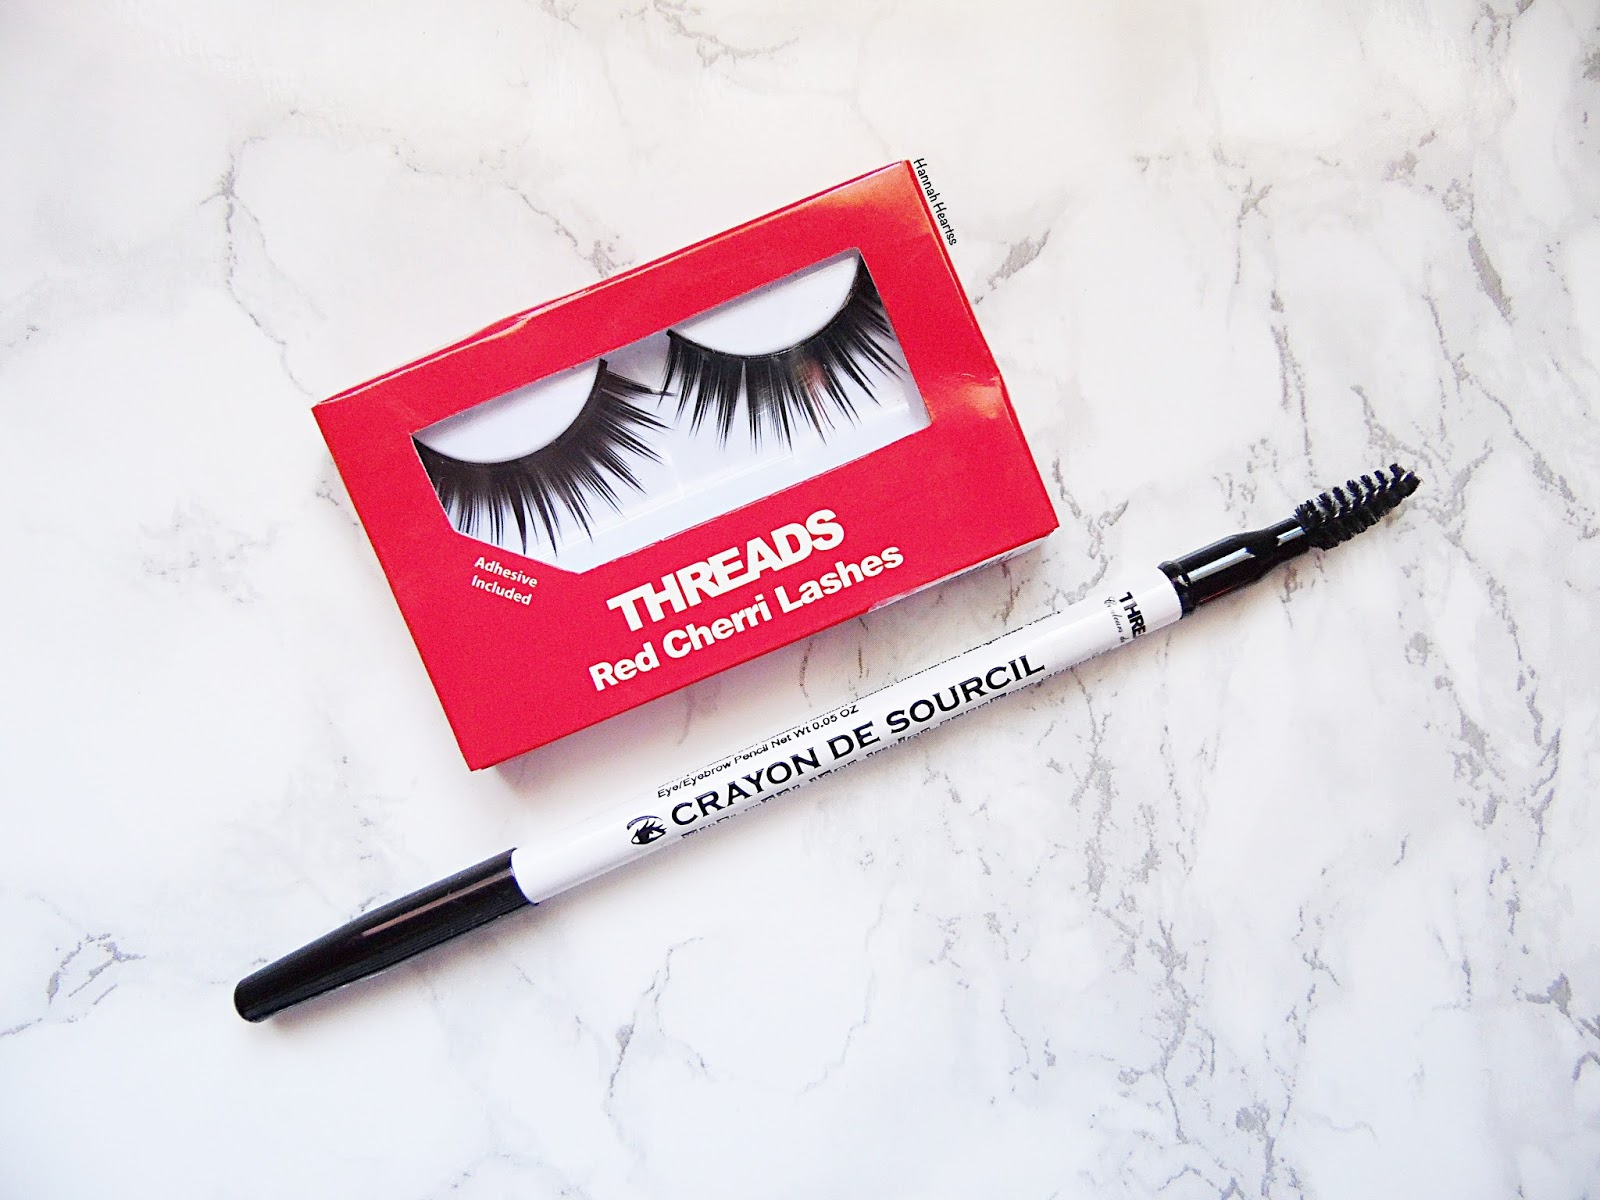 Threads False Lashes & Brow Pencil